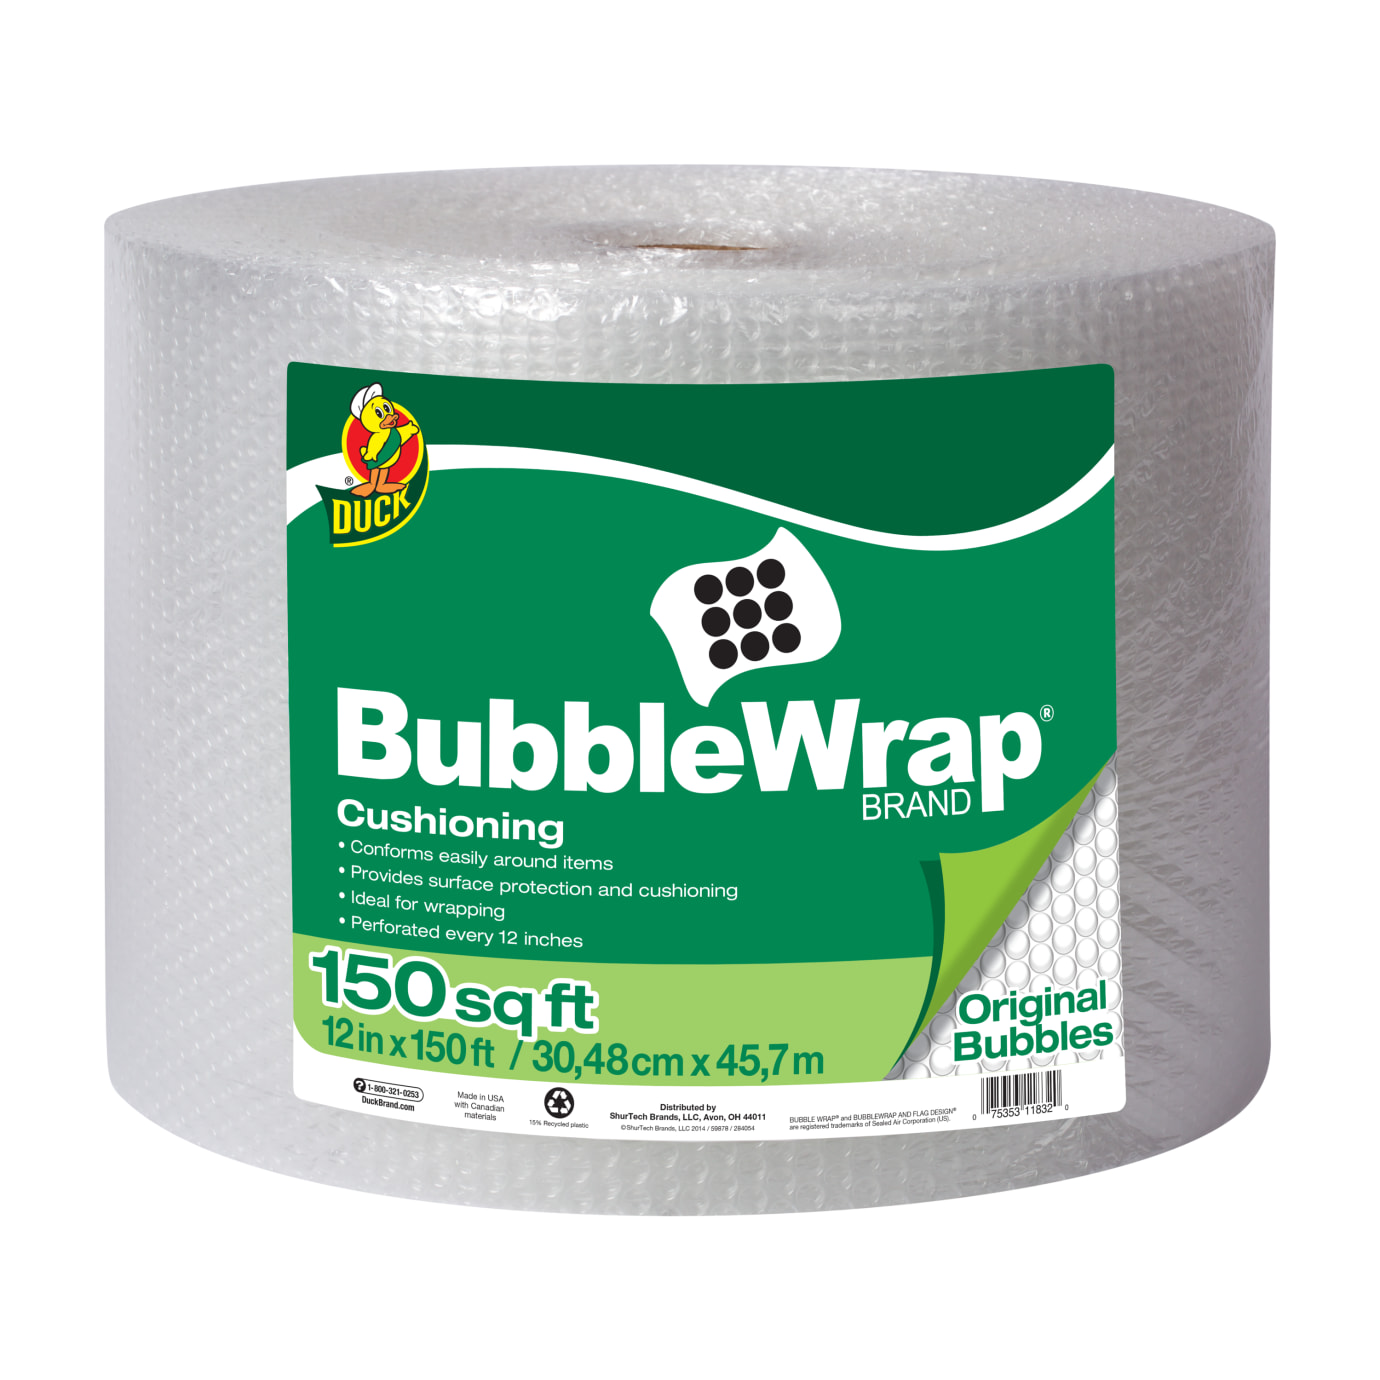 Duck Brand Original Bubble Wrap Cushioning - Clear, 12 in. x 150 ft.